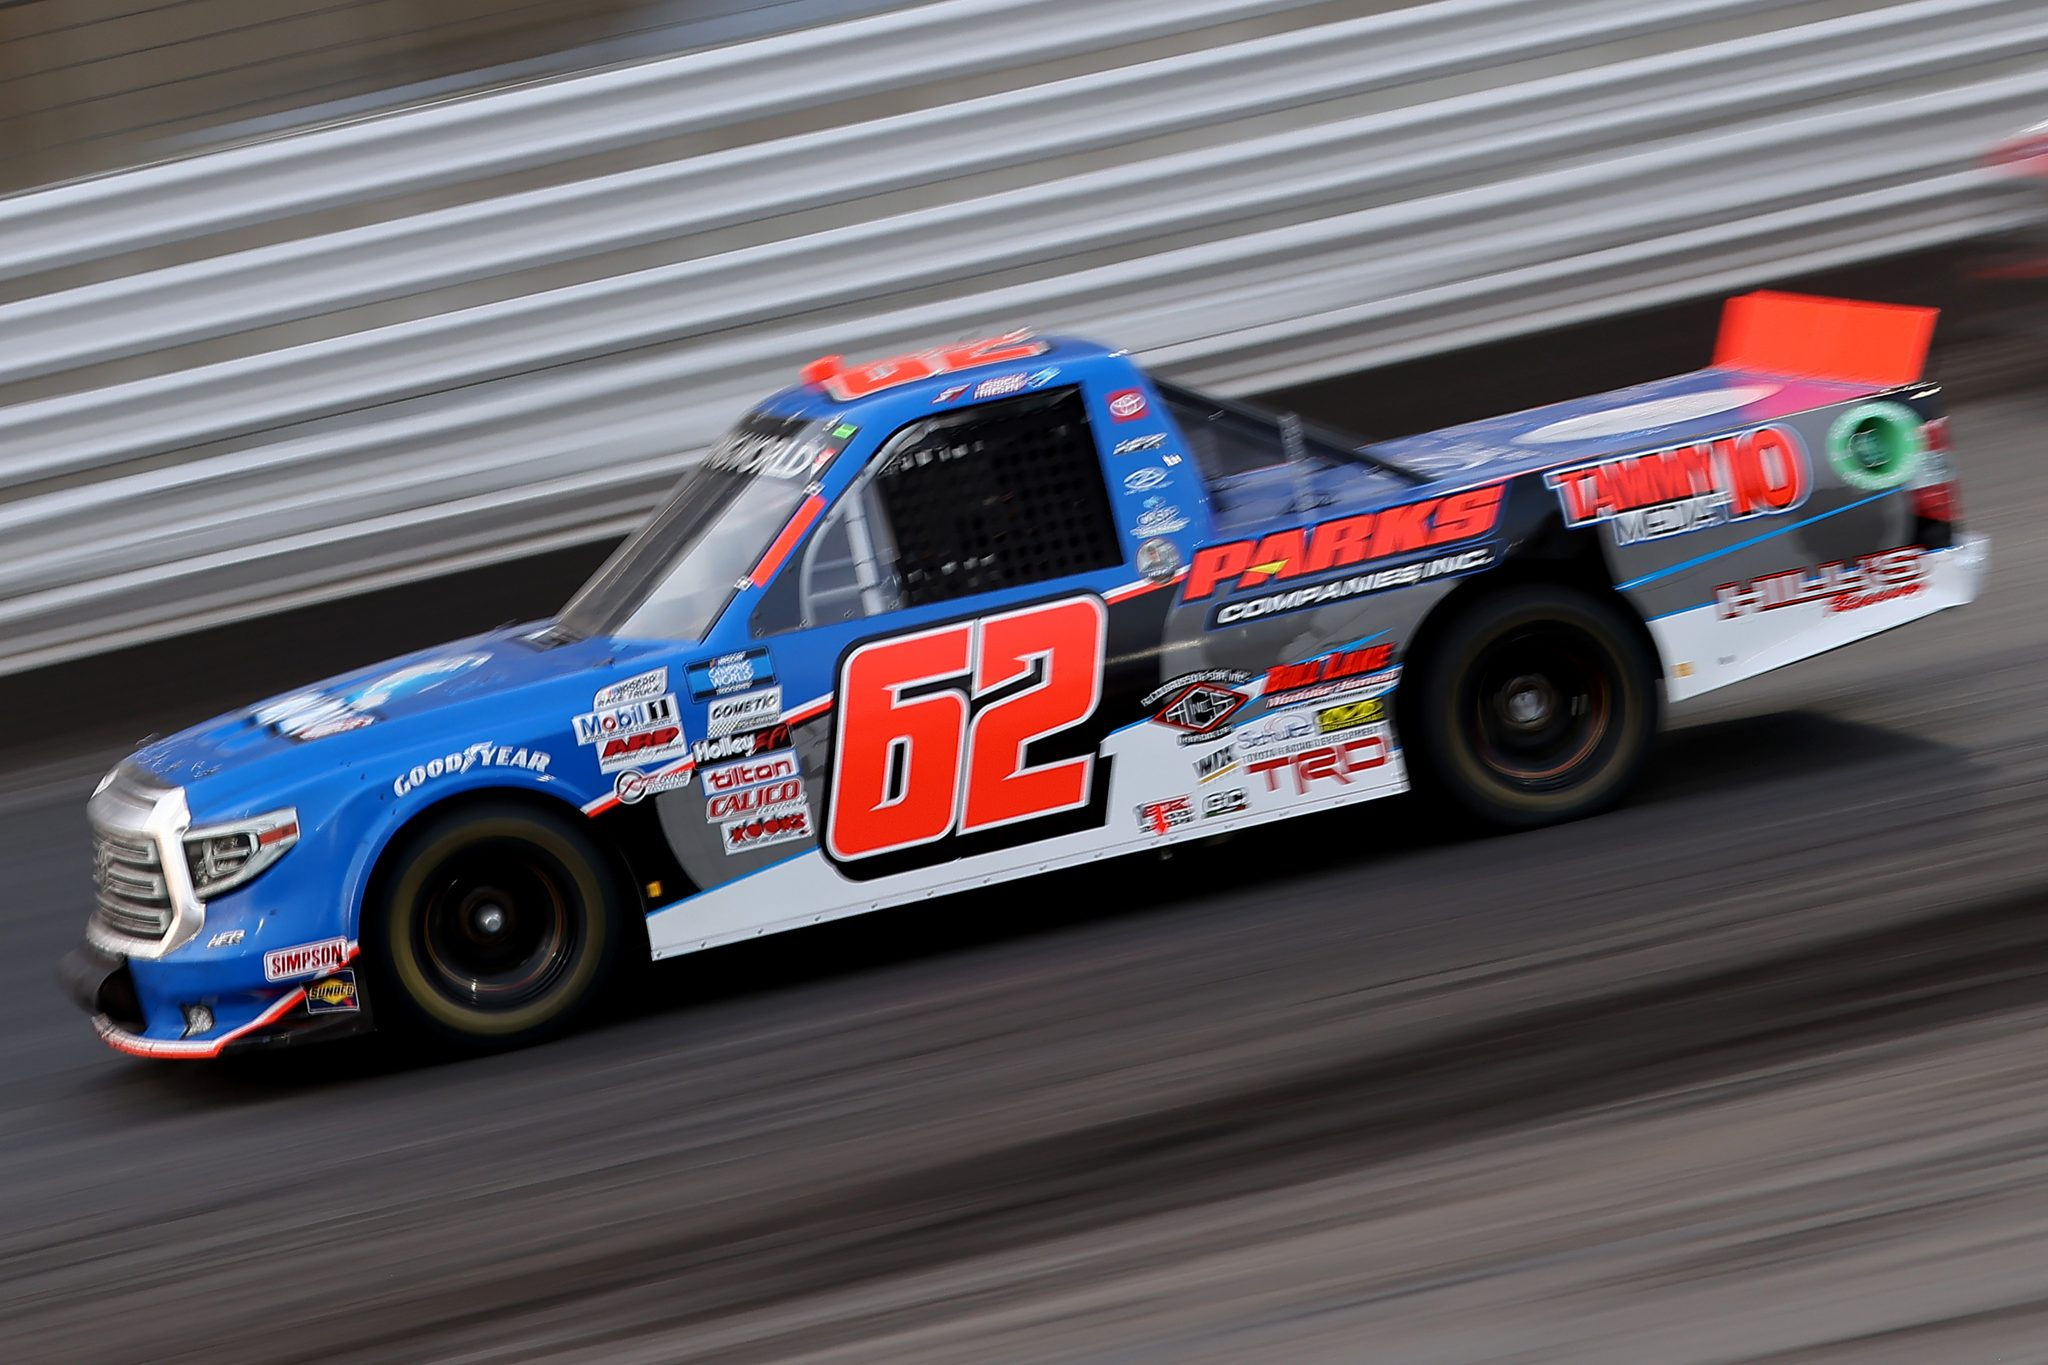 KNOXVILLE, IOWA - JULY 09: Jessica Friesen, driver of the #62 Halmar International Toyota, drives during the NASCAR Camping World Truck Series Corn Belt 150 presented by Premier Chevy Dealers at Knoxville Raceway on July 09, 2021 in Knoxville, Iowa. (Photo by James Gilbert/Getty Images) | Getty Images